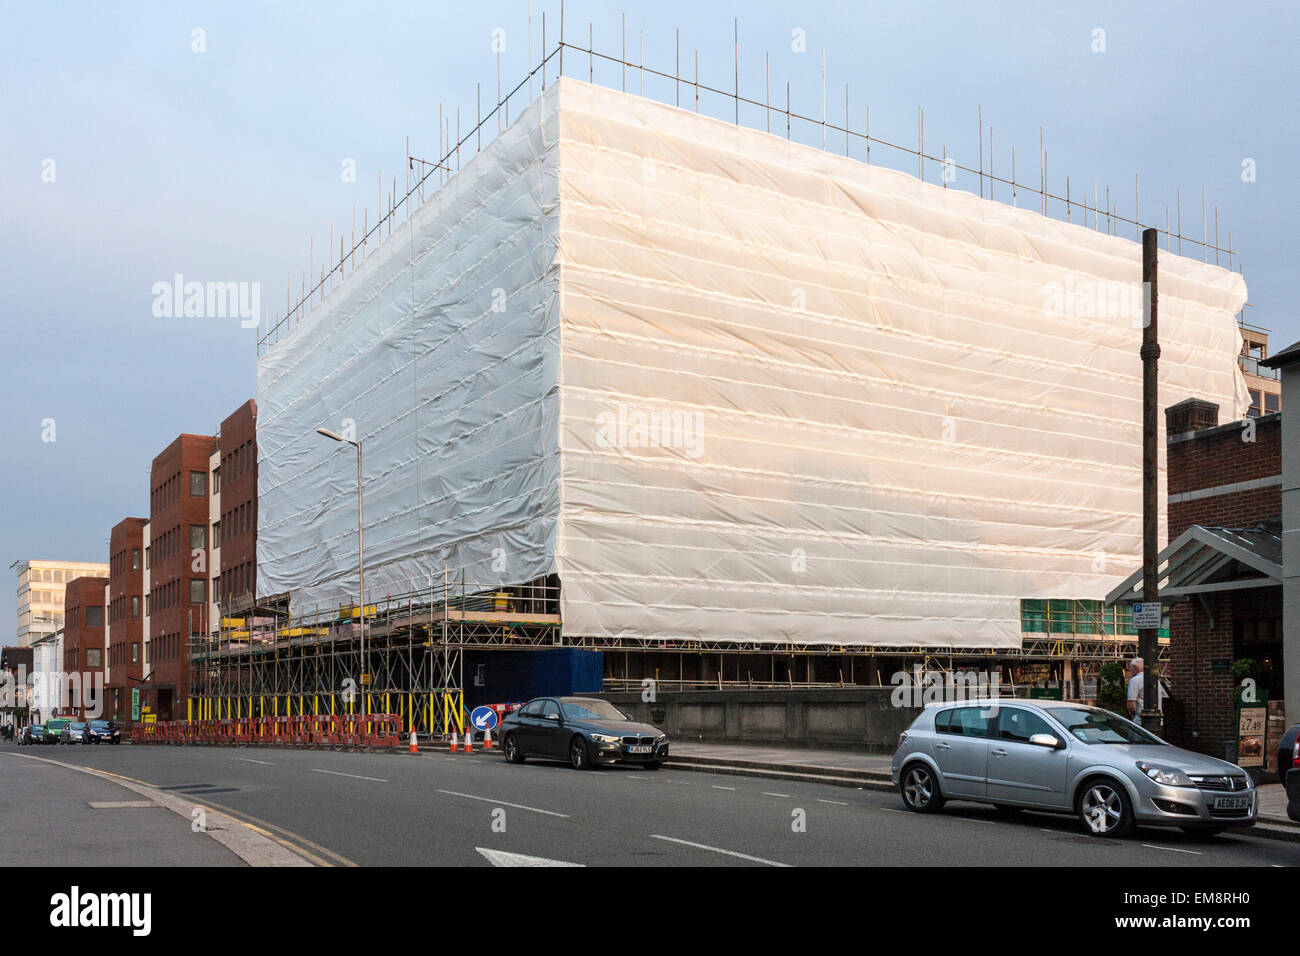 https://c7.alamy.com/comp/EM8RH0/protective-plastic-sheeting-on-scaffolding-EM8RH0.jpg